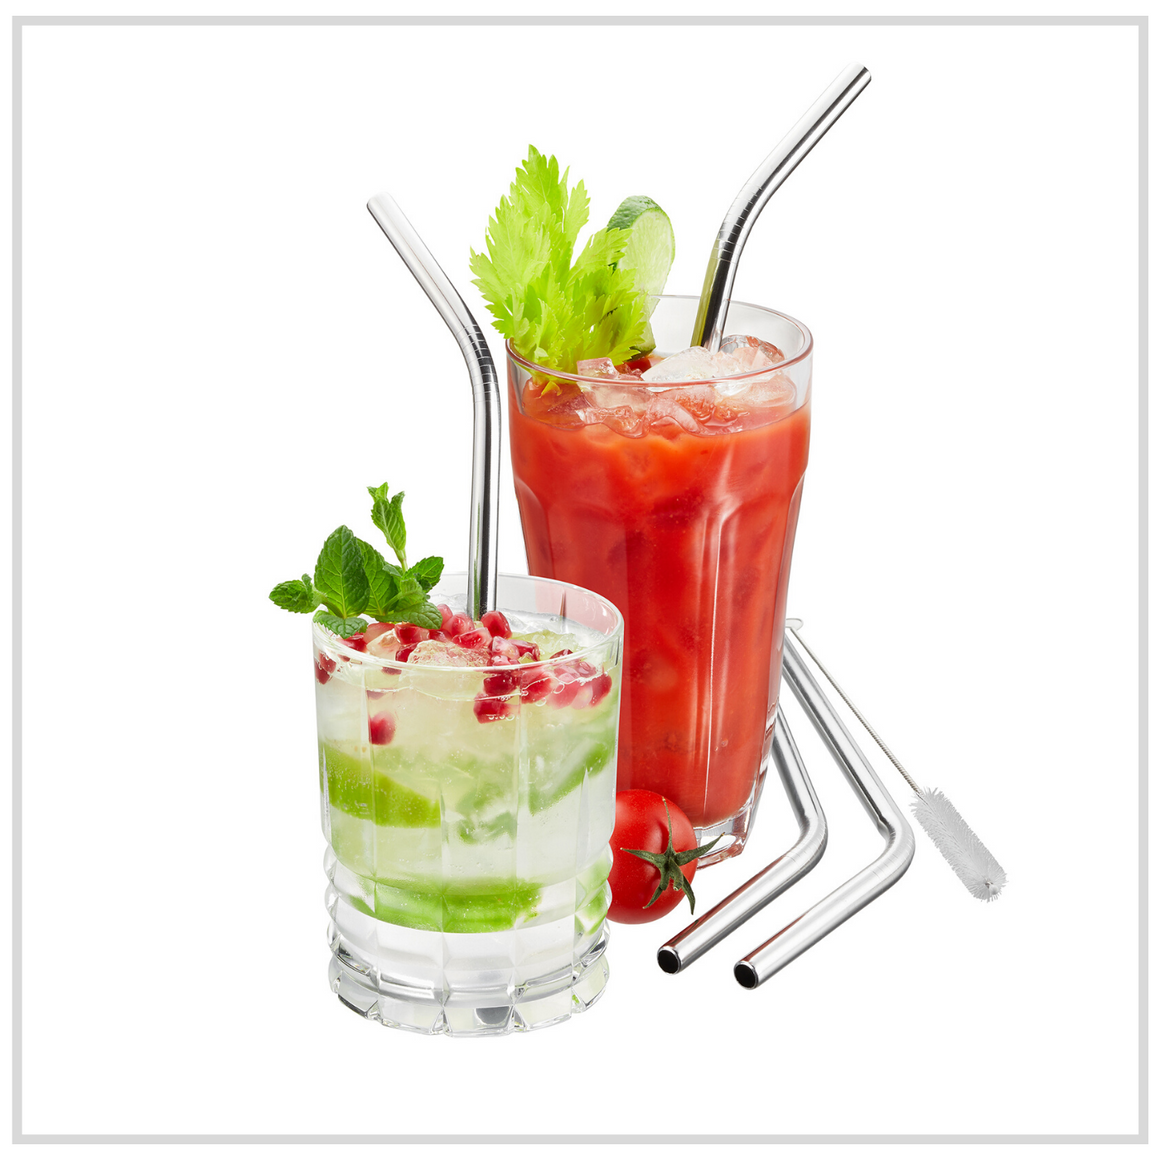 Gefu Stainless steel straw - curved set of 4 pcs